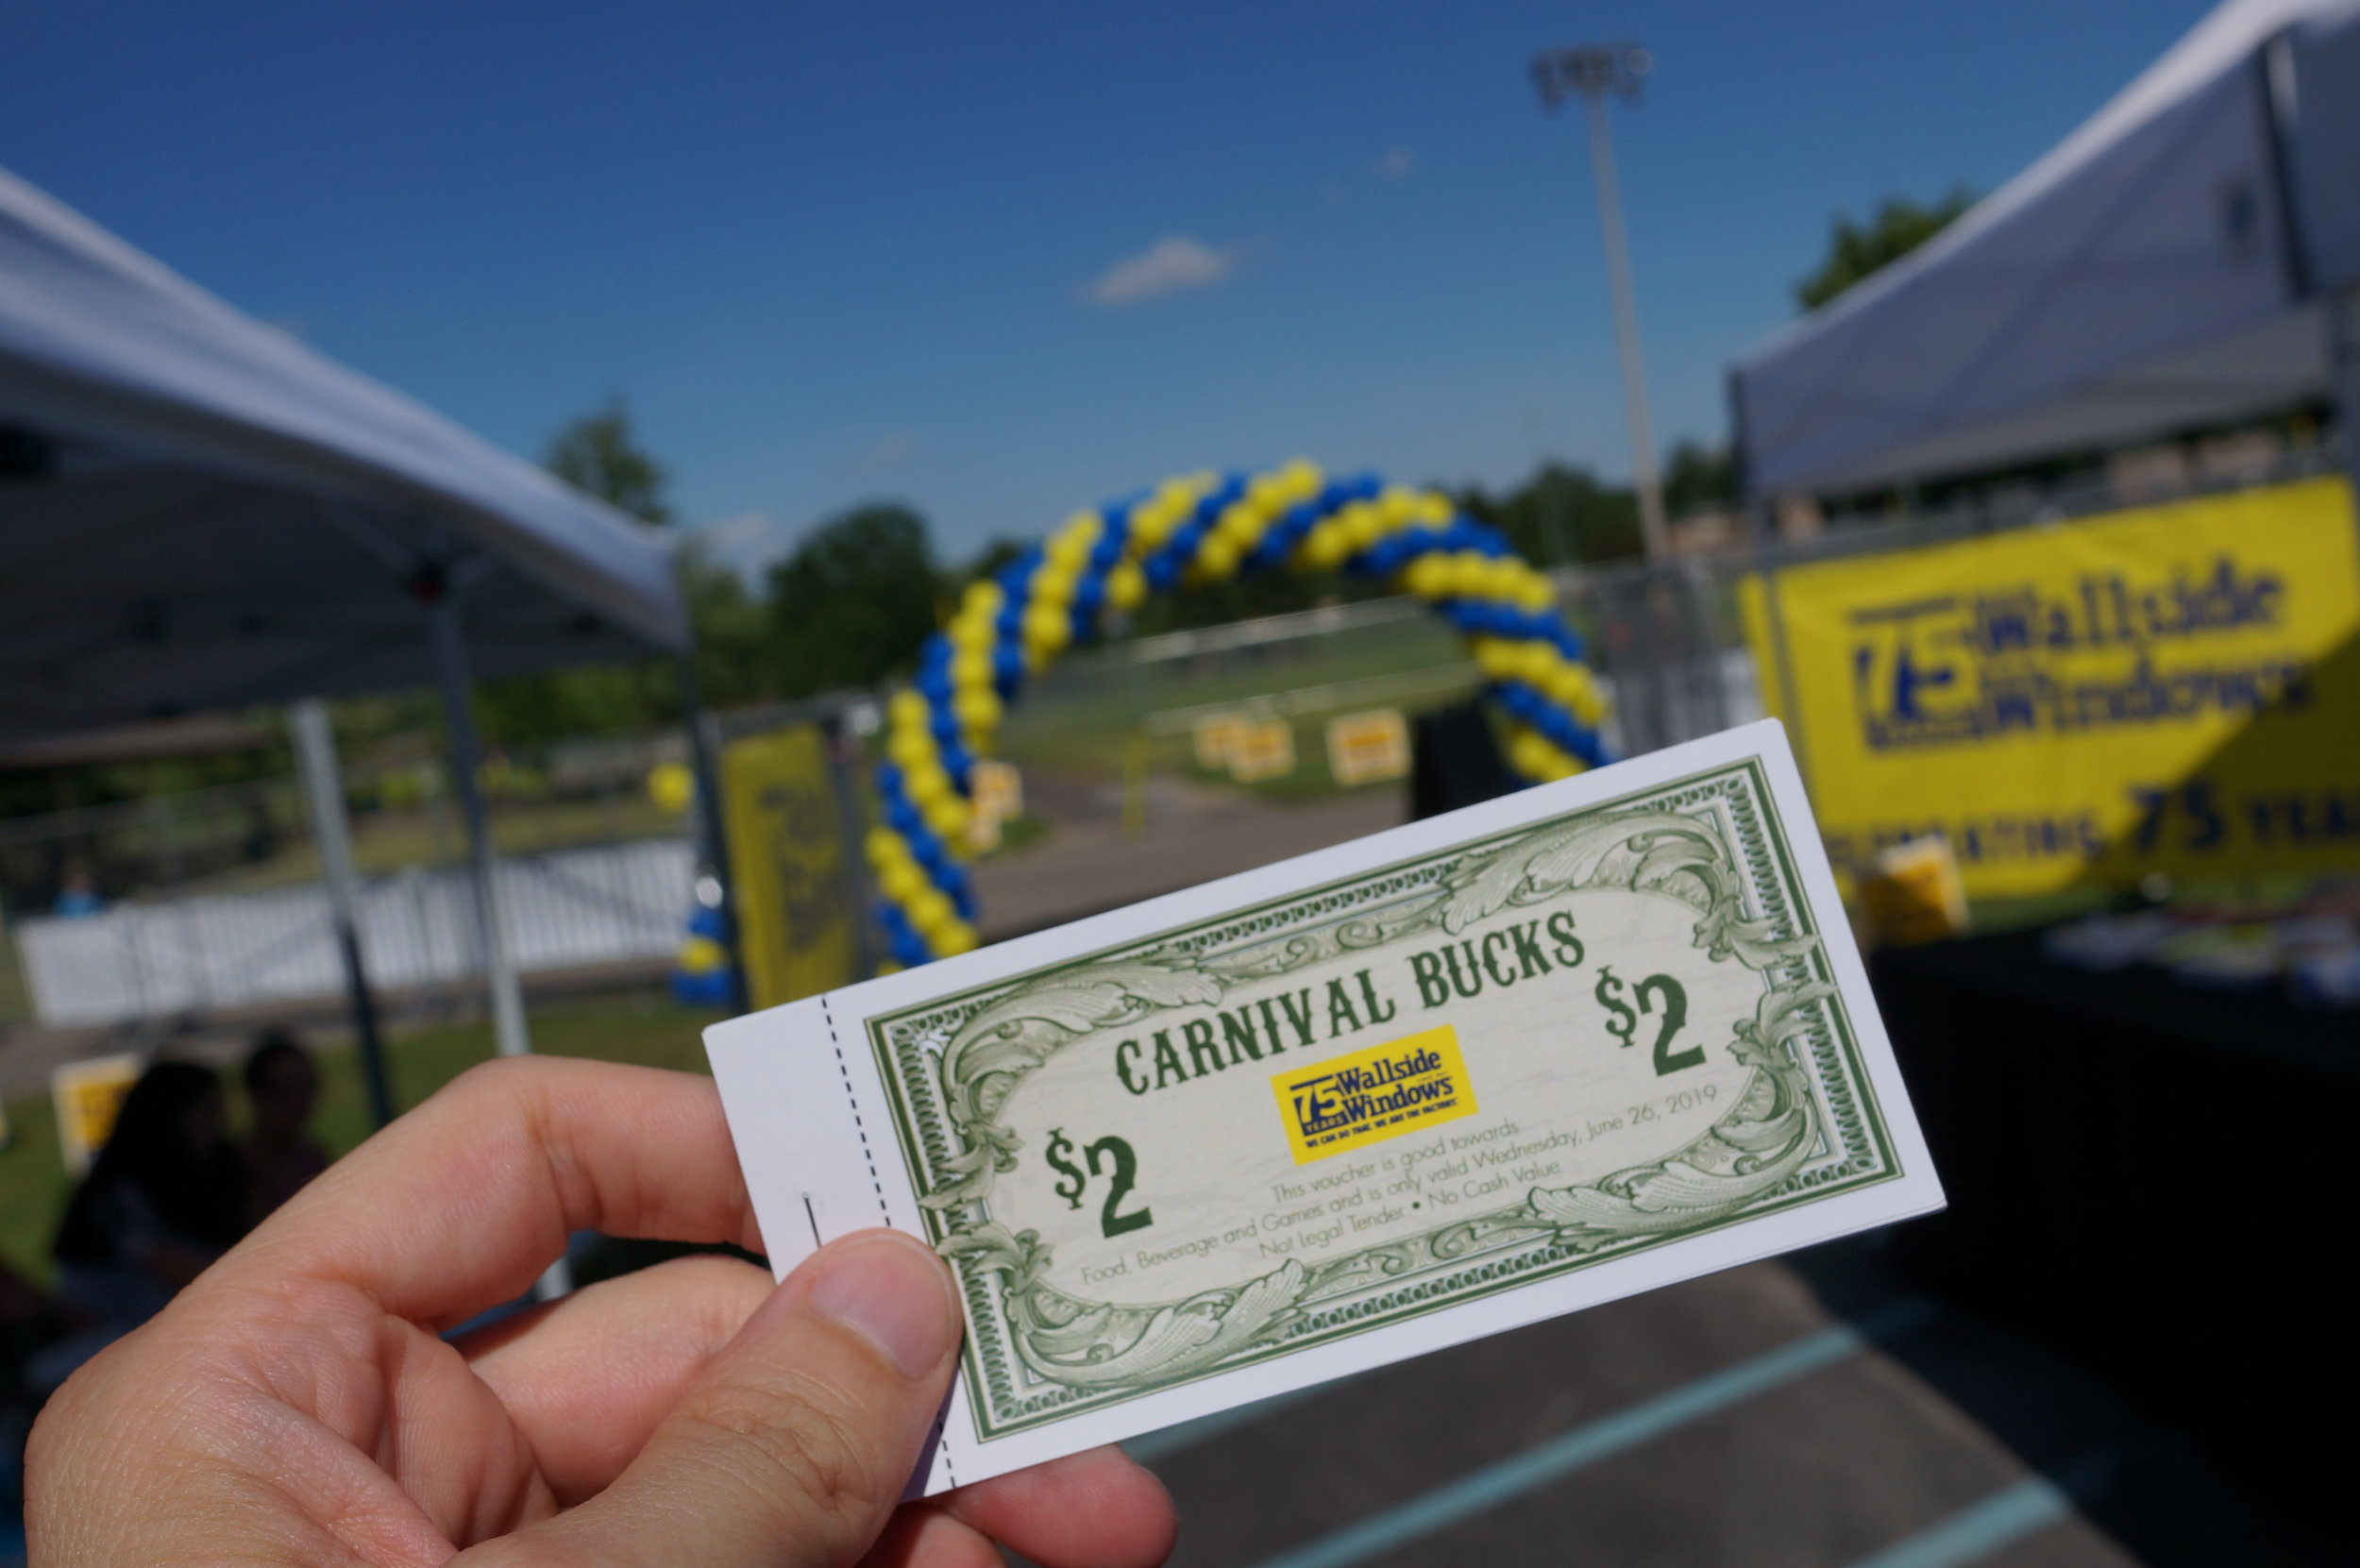 Wallside Windows attendees snacked using Carnival Bucks at Wednesday's event.